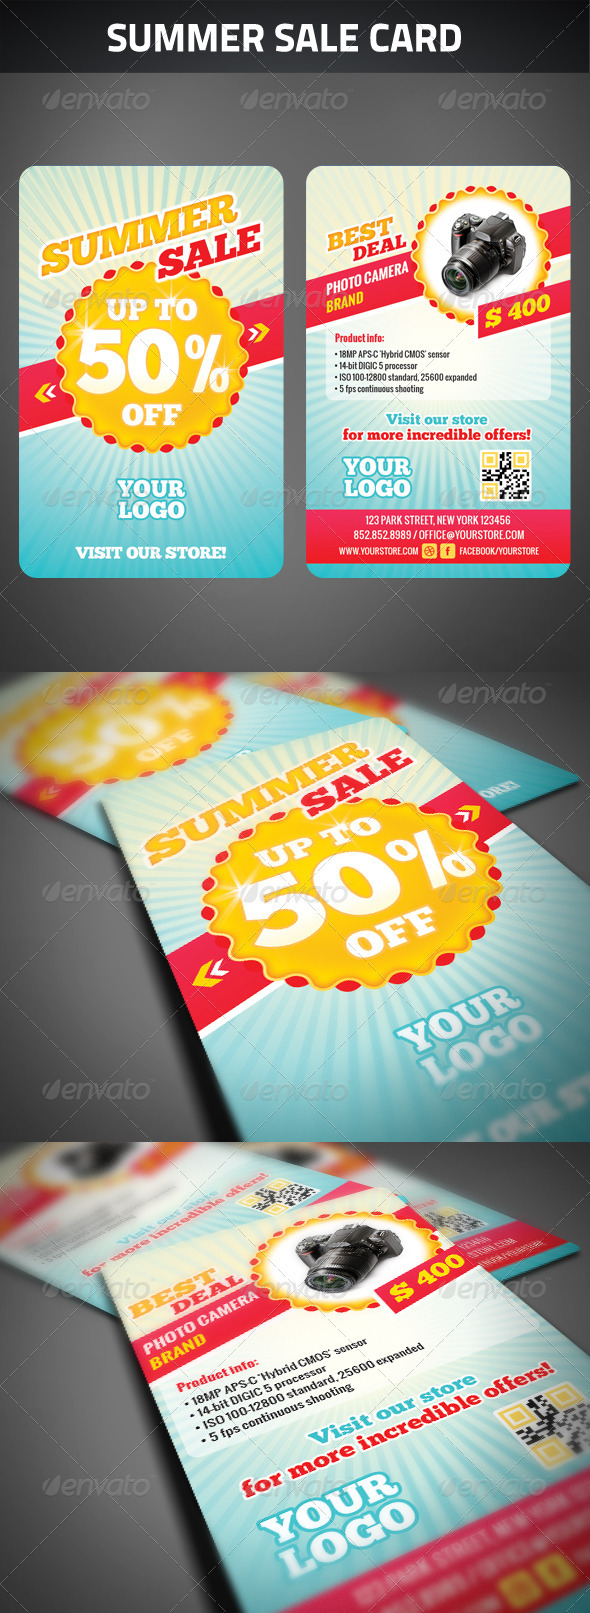 Summer Sale Card - Cards & Invites Print Templates